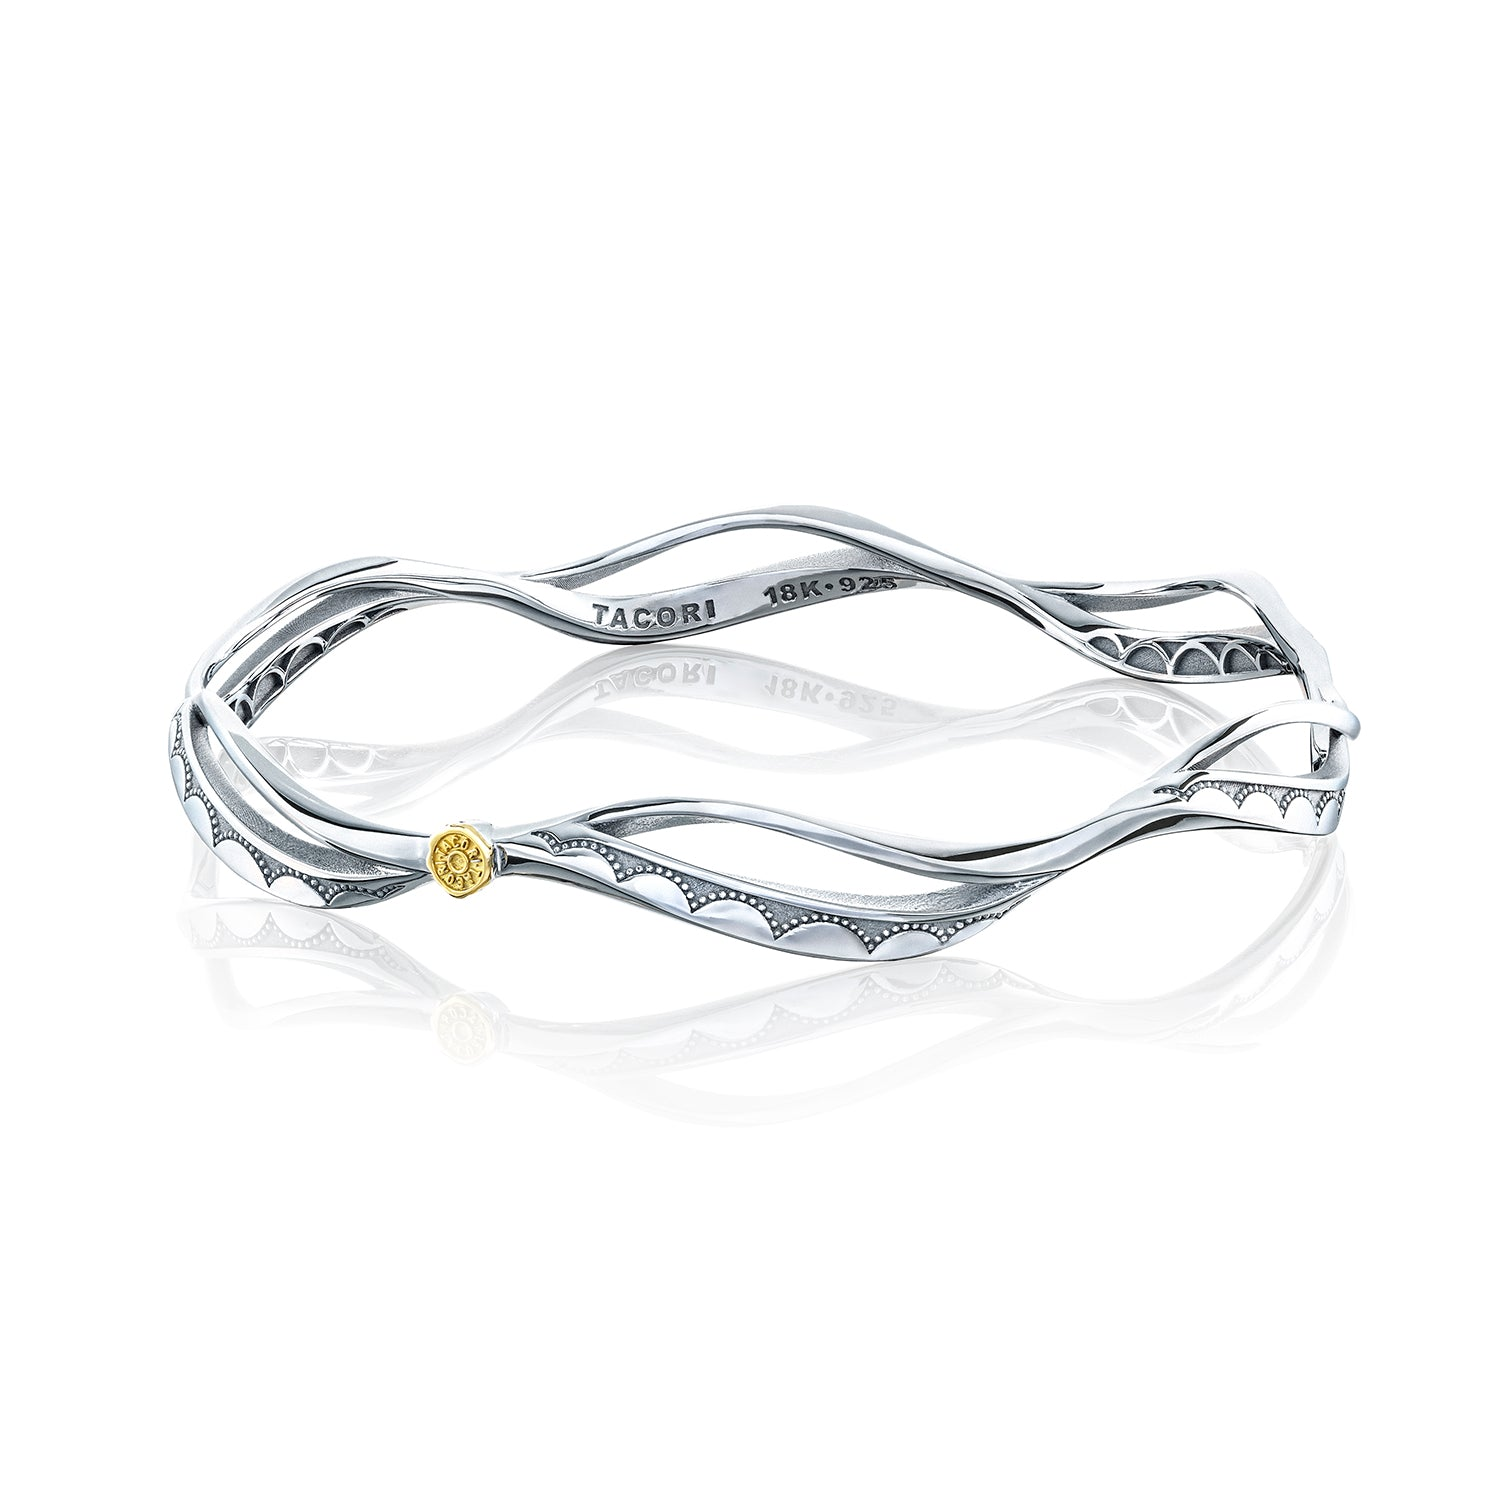 Tacori 'Crescent Cove' Multi-Wave Bracelet